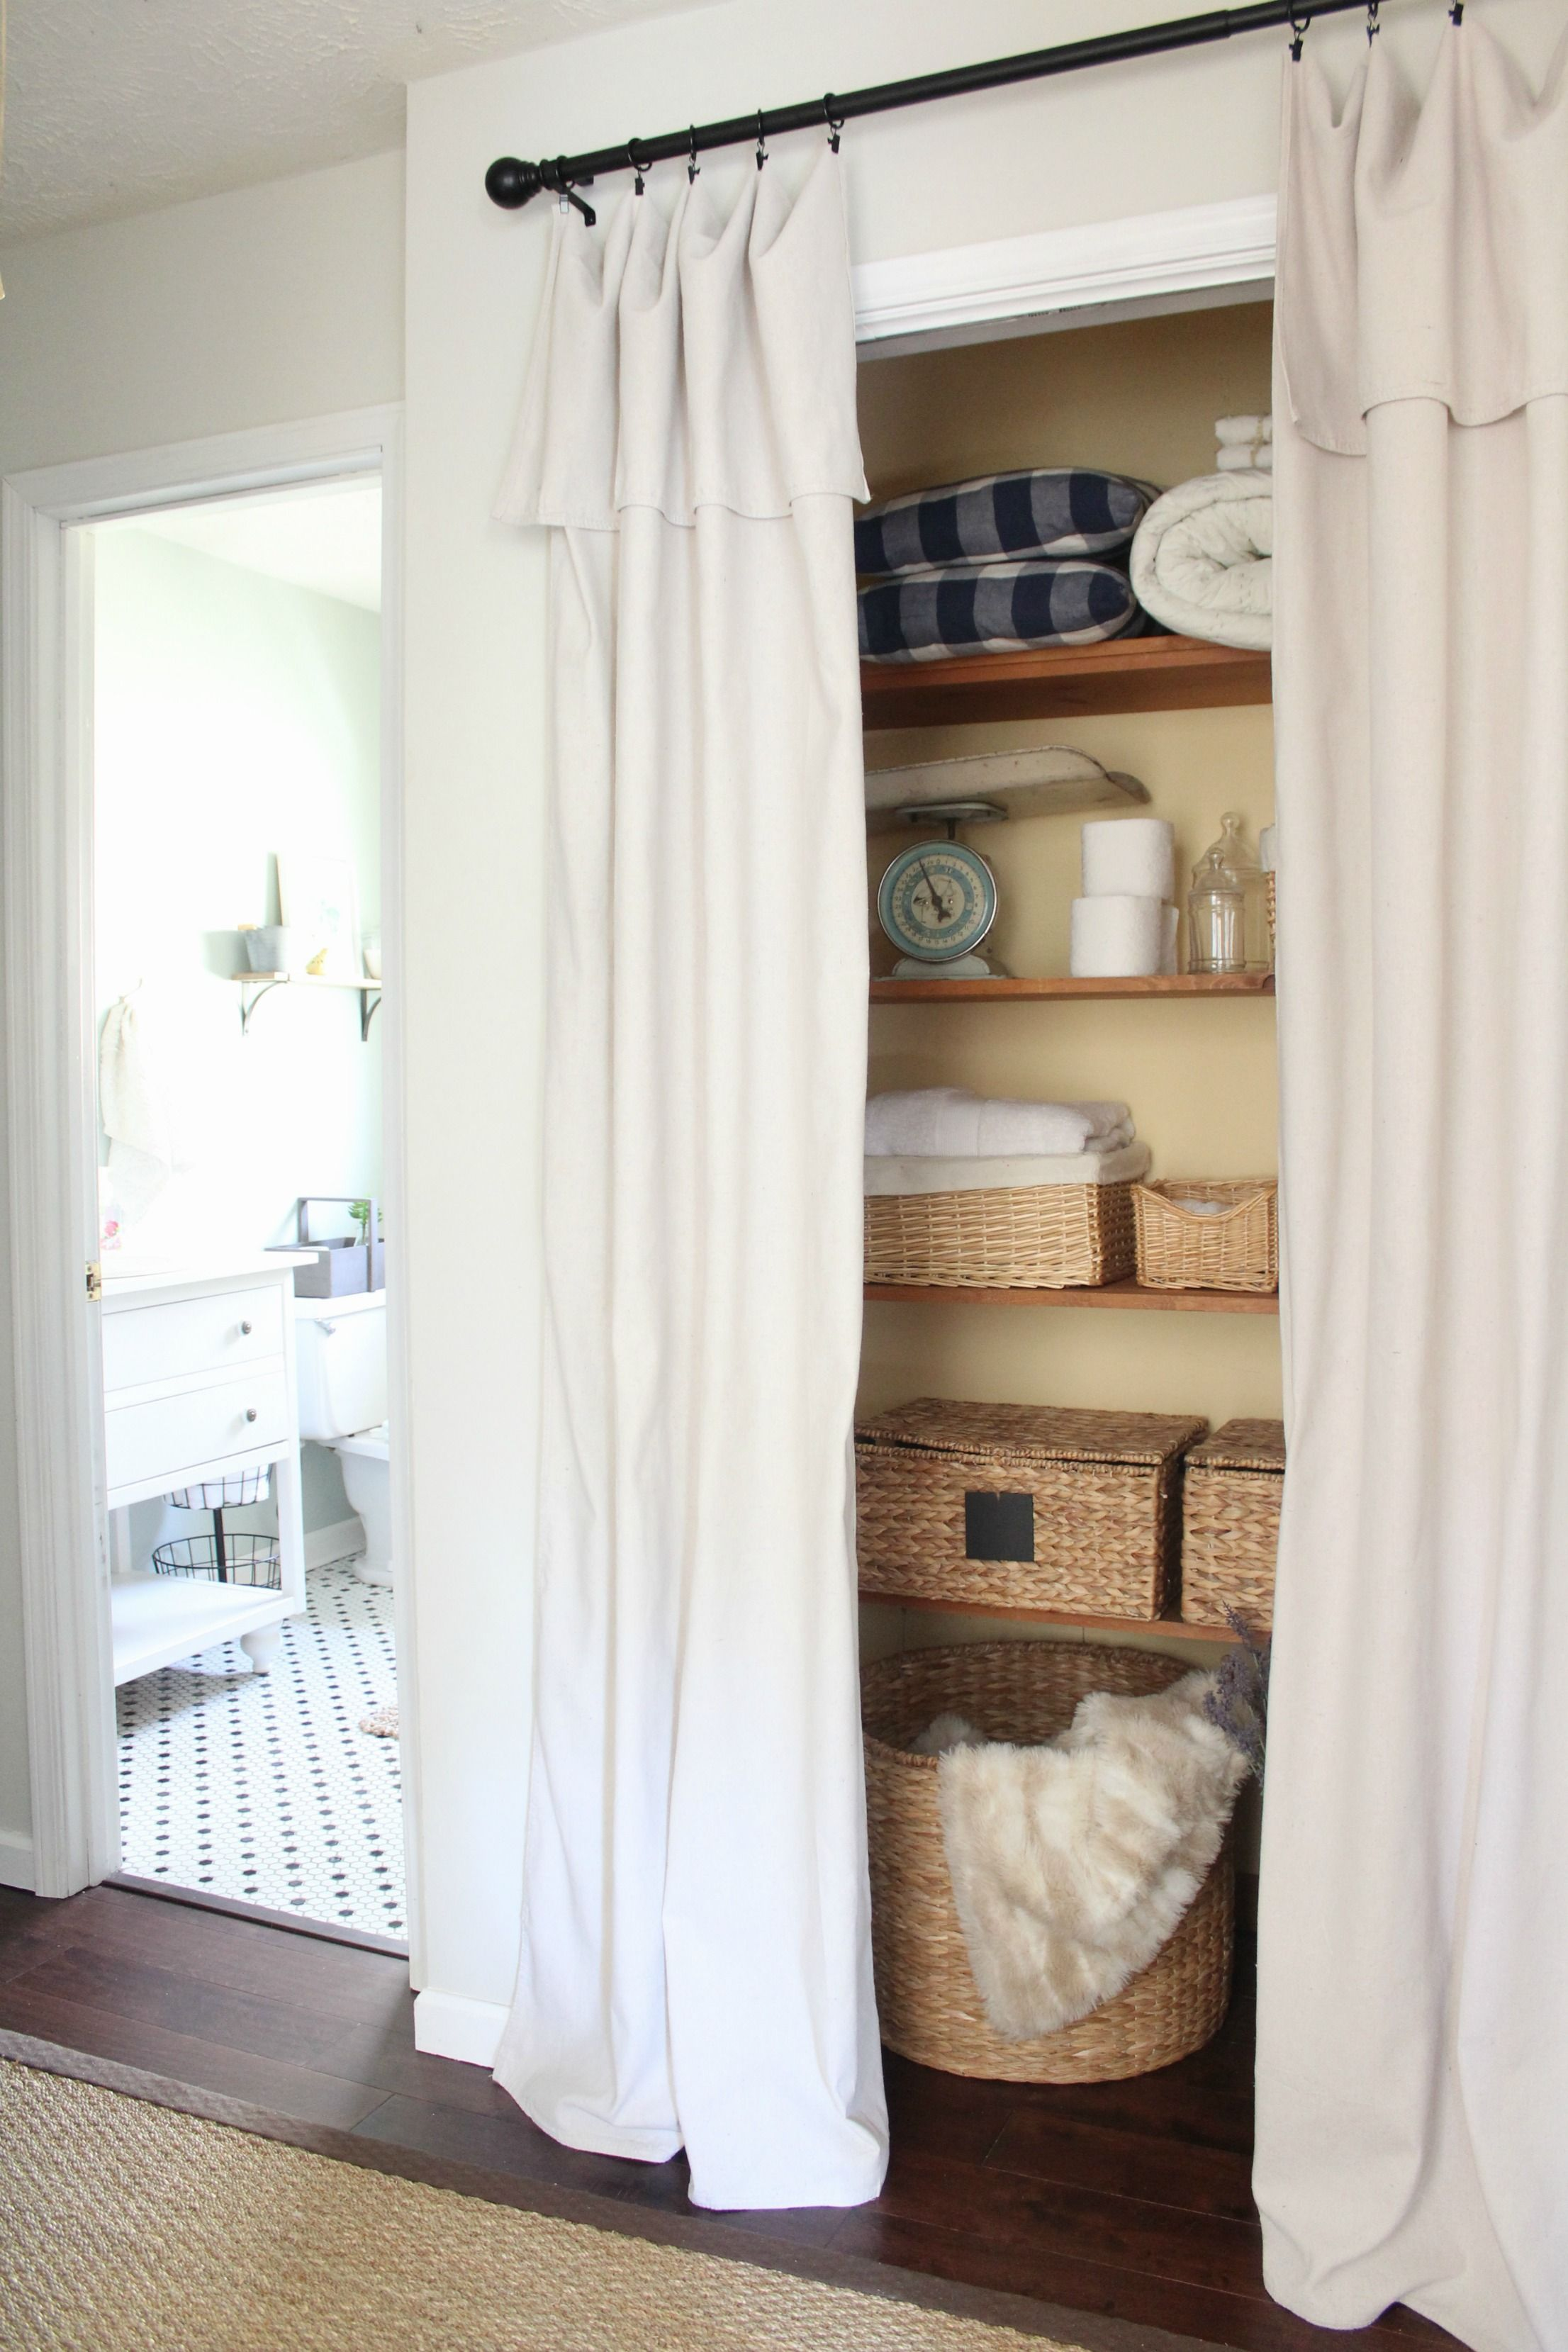 Closet Curtain Create A New Look For Your Room With These Closet Door Ideas